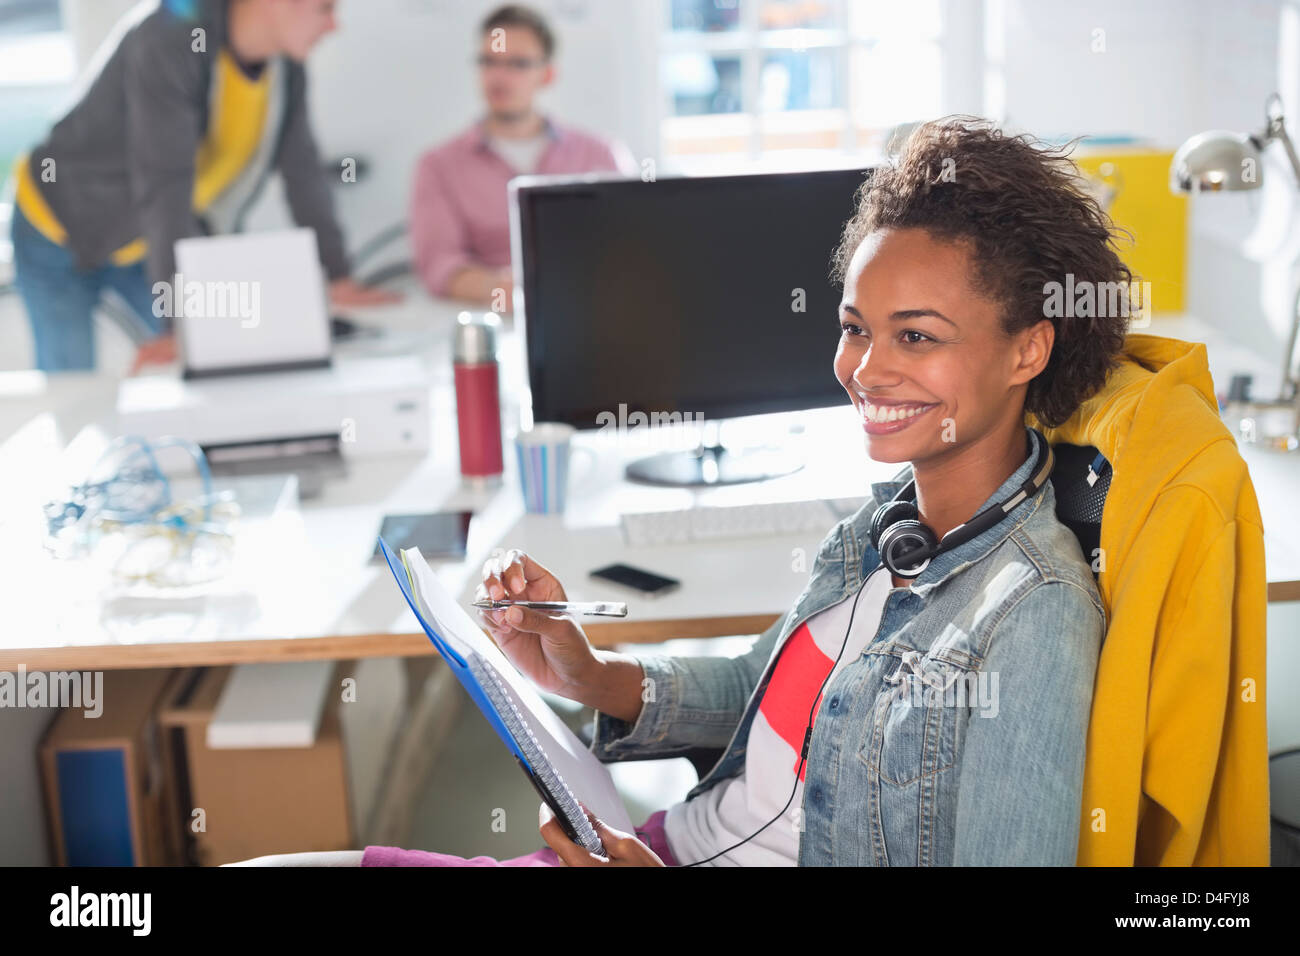 Businesswoman making notes at desk - Stock Image